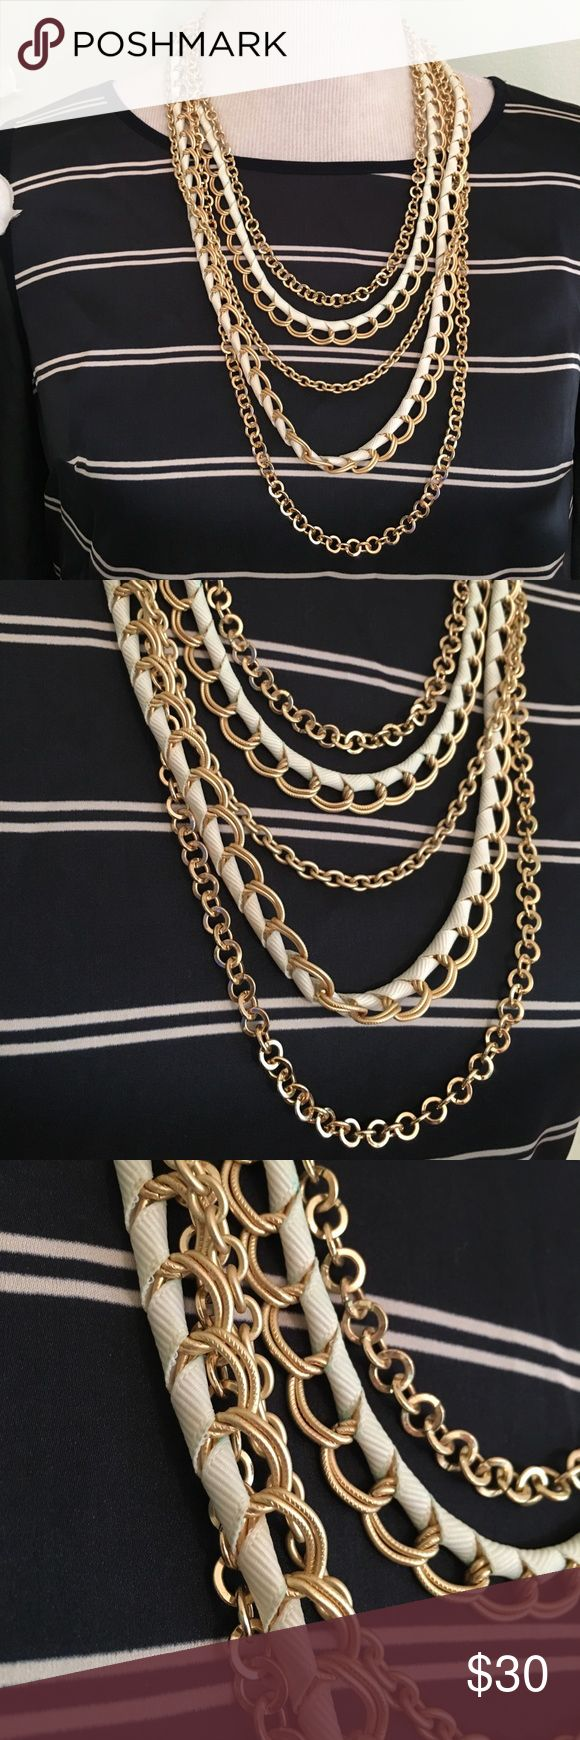 CHICO'S WHITE GOLD NECKLACE Stunning elegant necklace in excellent condition Chico's Jewelry Necklaces